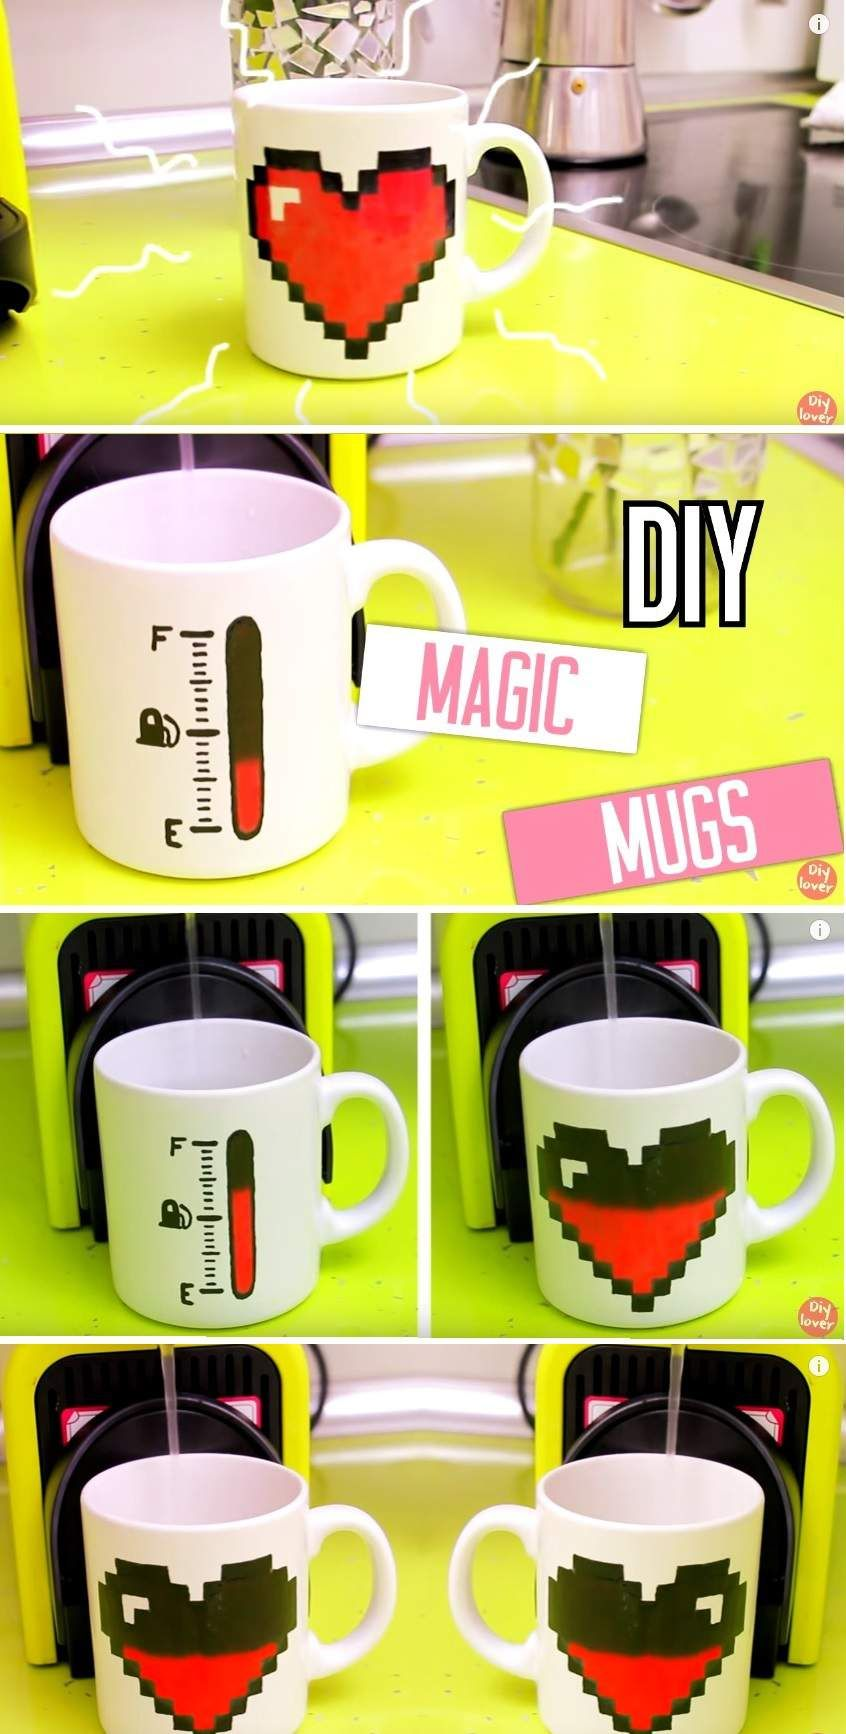 How to make diy color changing mugs do it yourself today diy ideas solutioingenieria Choice Image